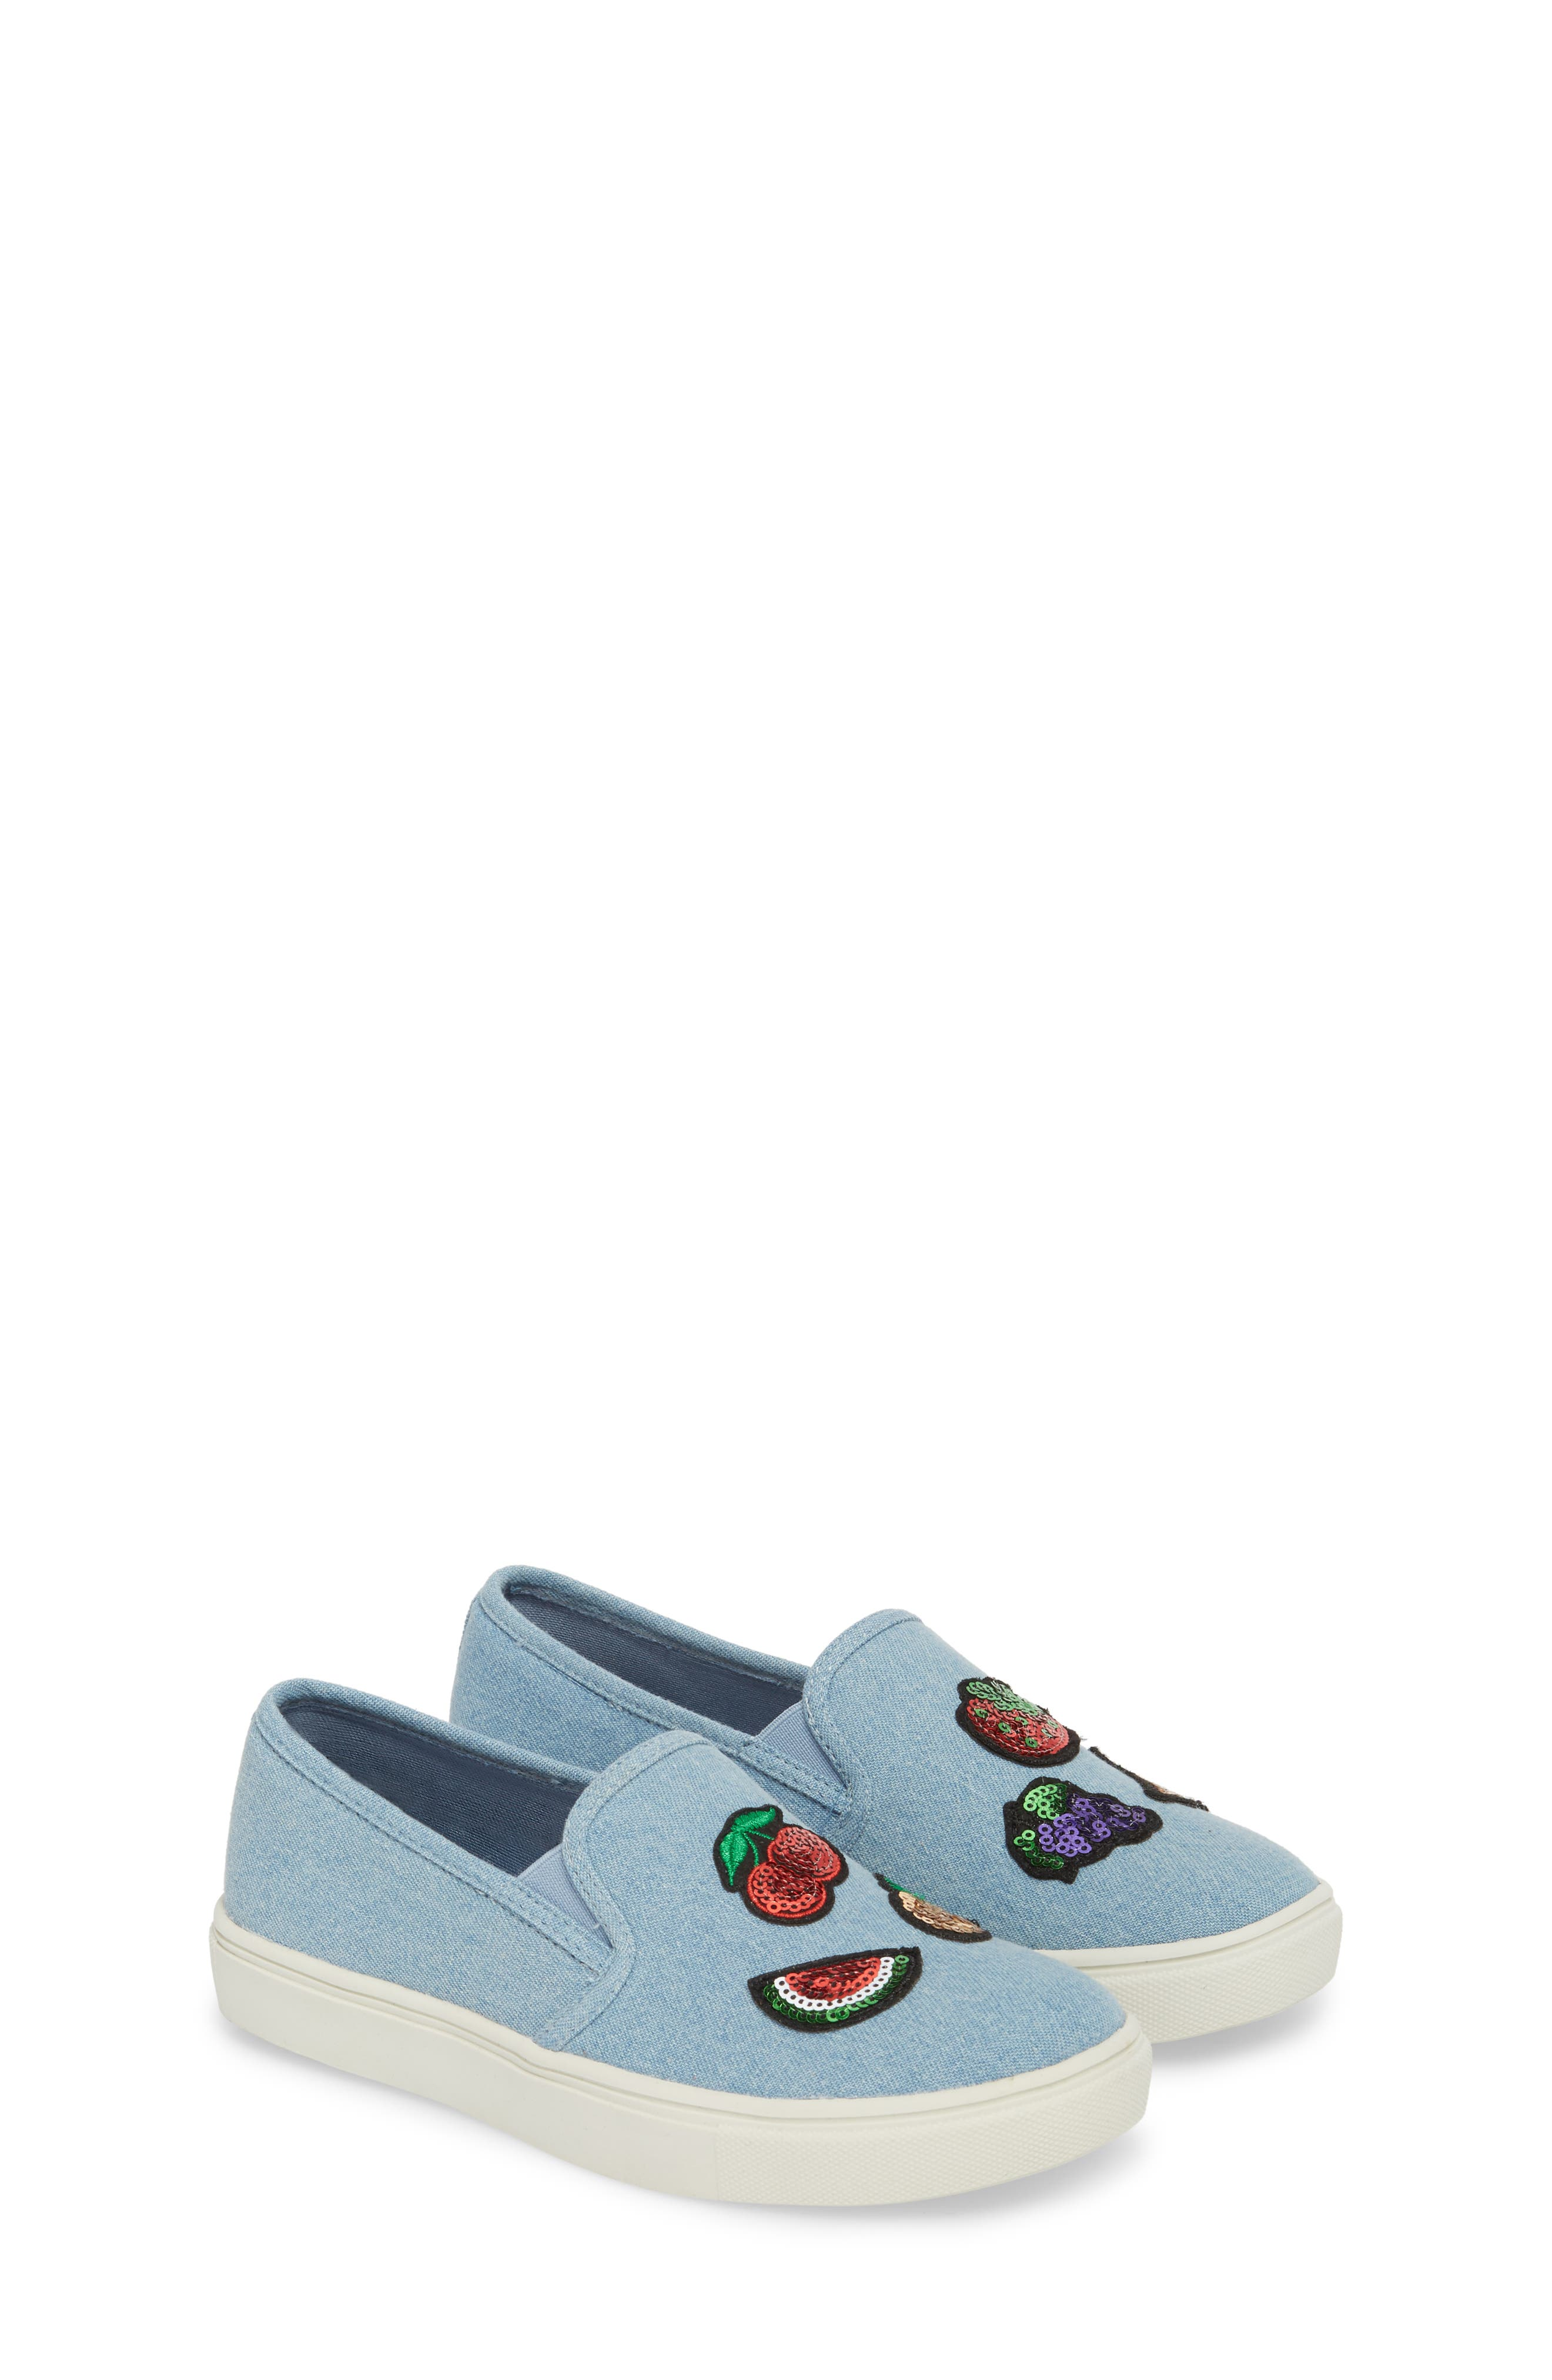 Twinny Snack Appliqué Sneaker,                             Alternate thumbnail 3, color,                             Chambray Fabric